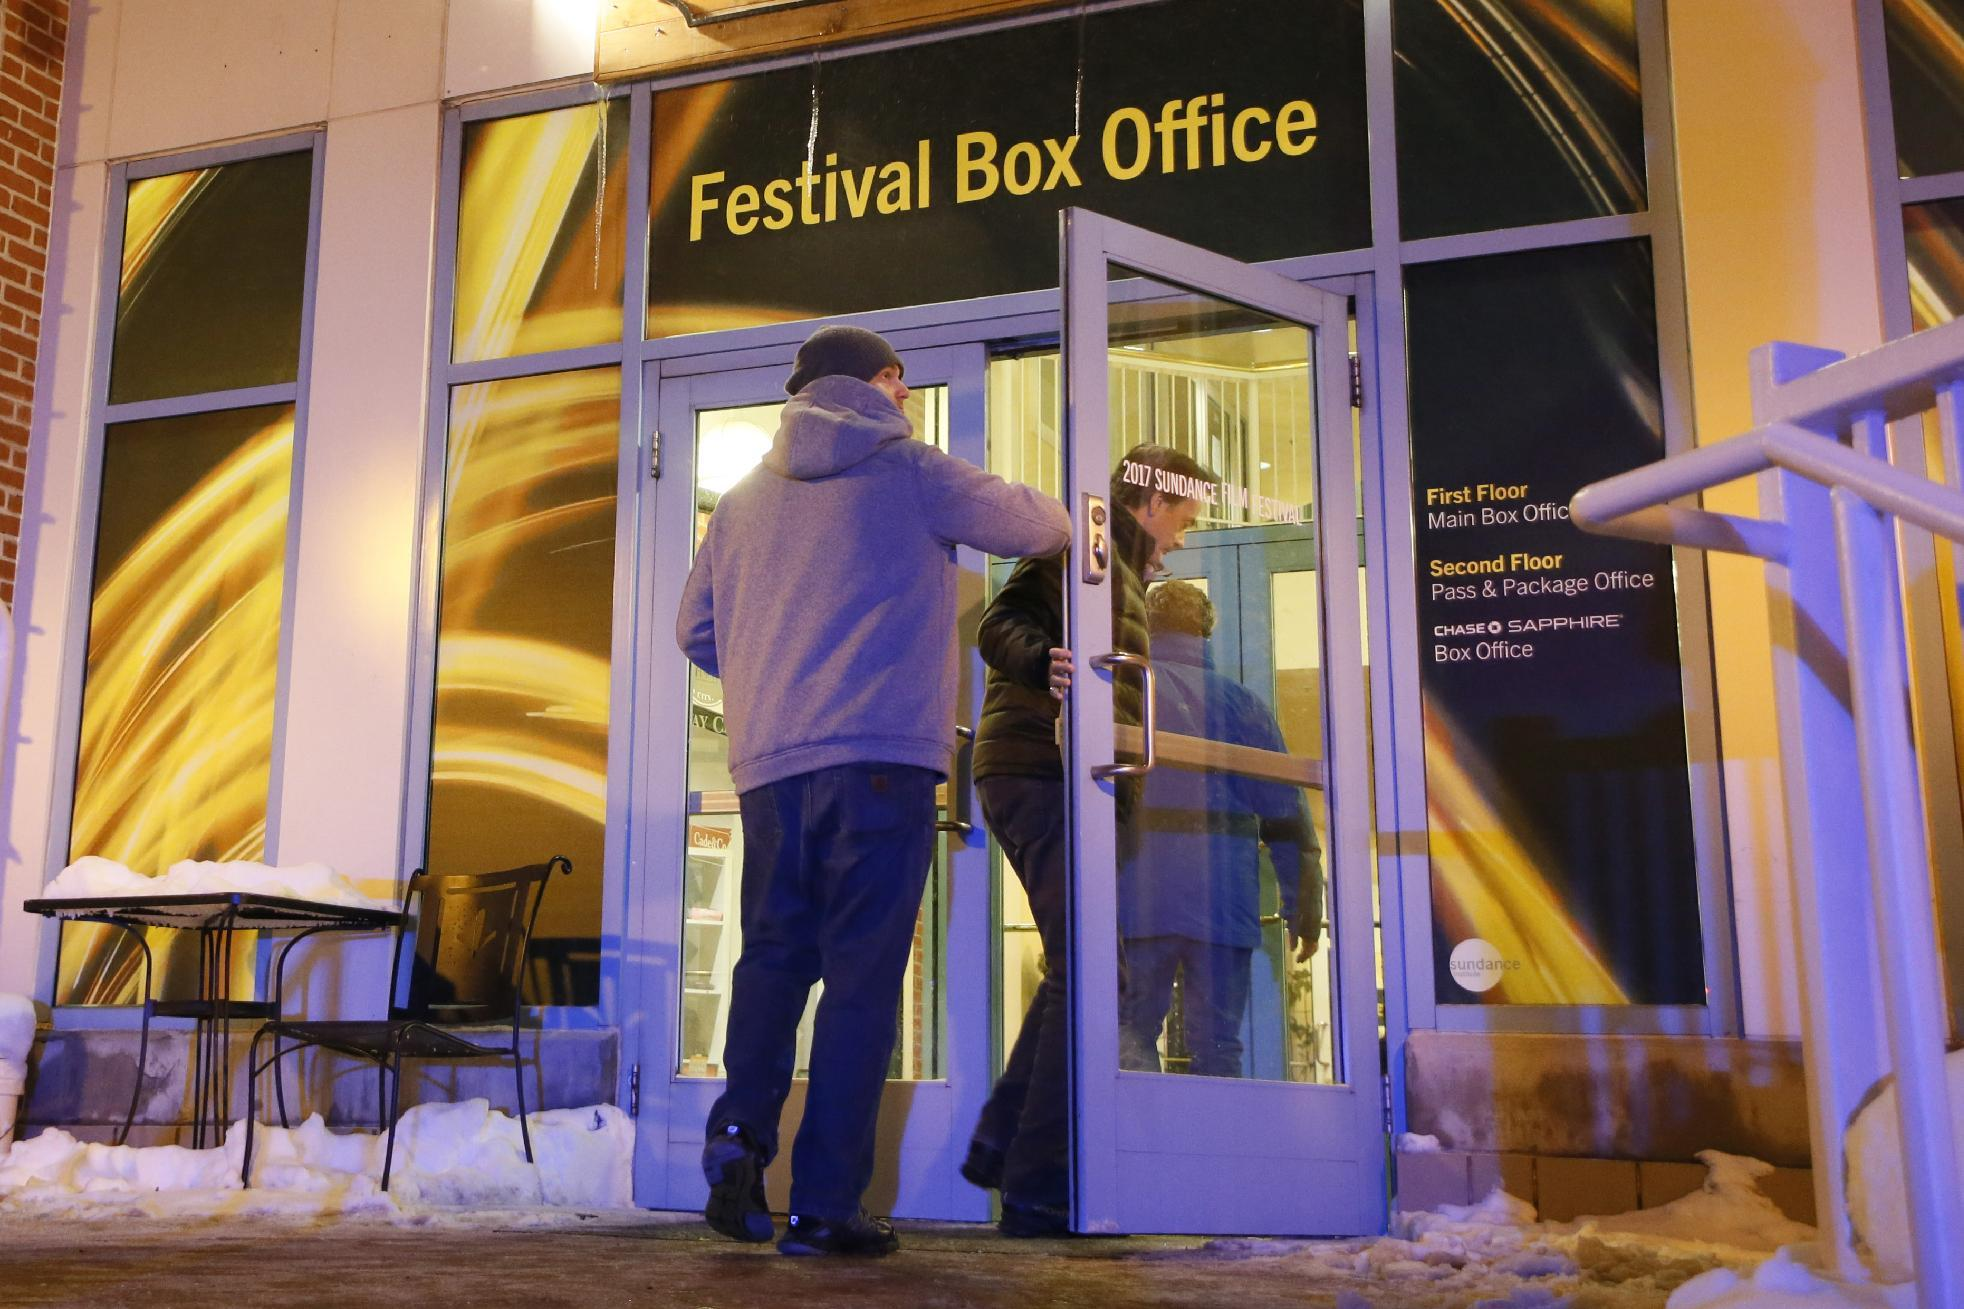 Cyberattack on Sundance briefly shutters box office